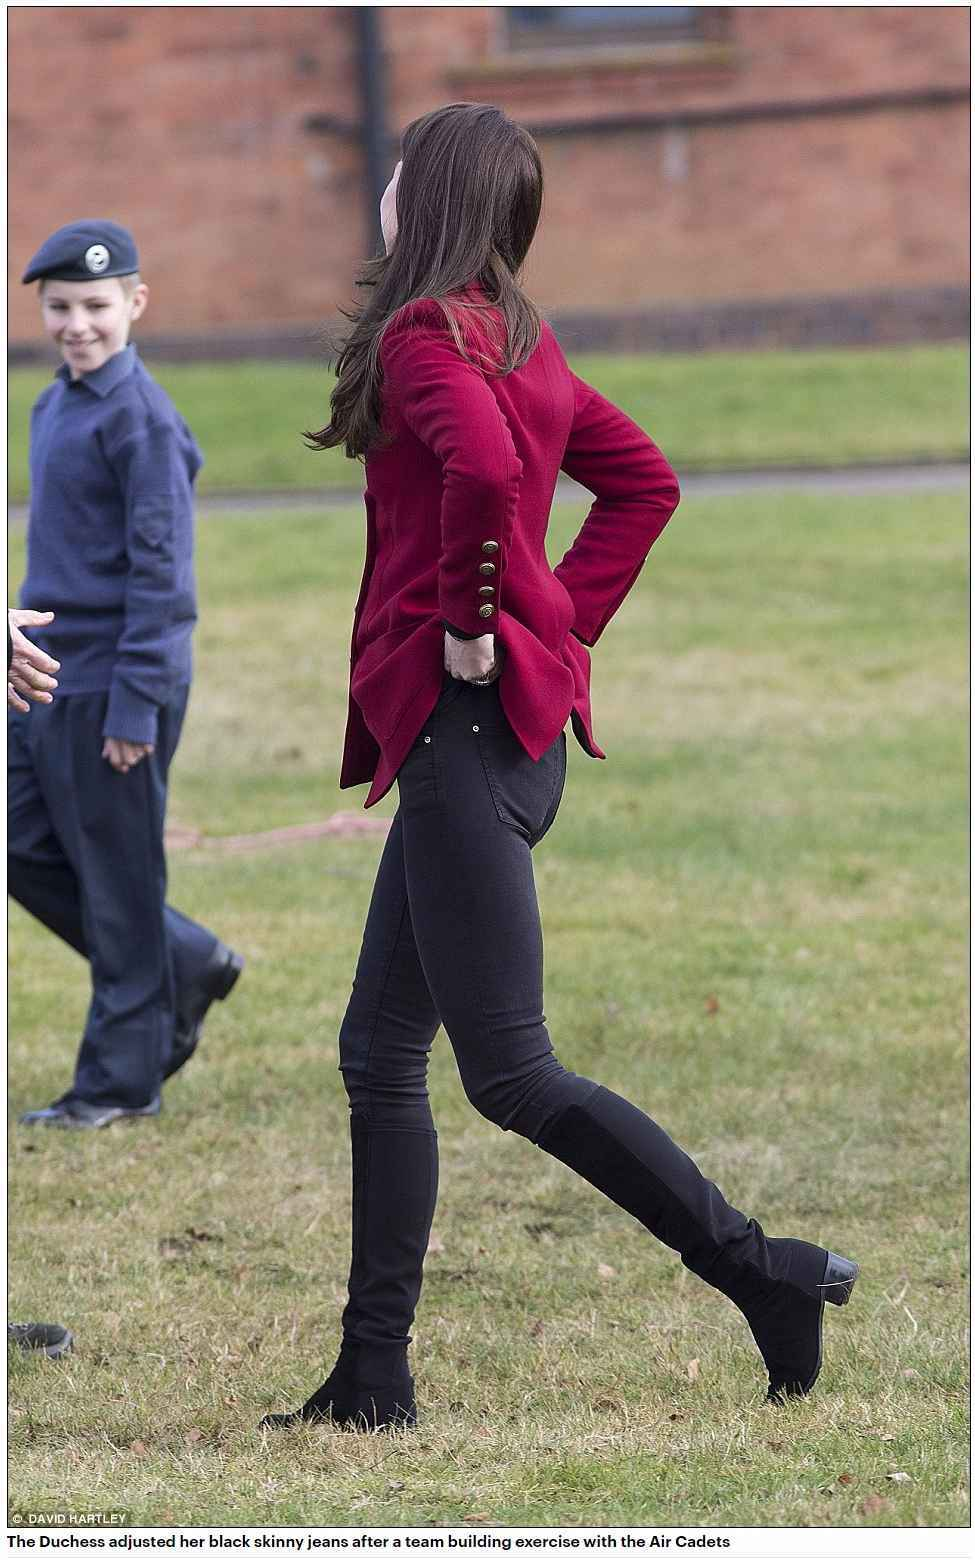 The Duchess adjusted her black skinny jeans after a team building exercise with the Air Cadets